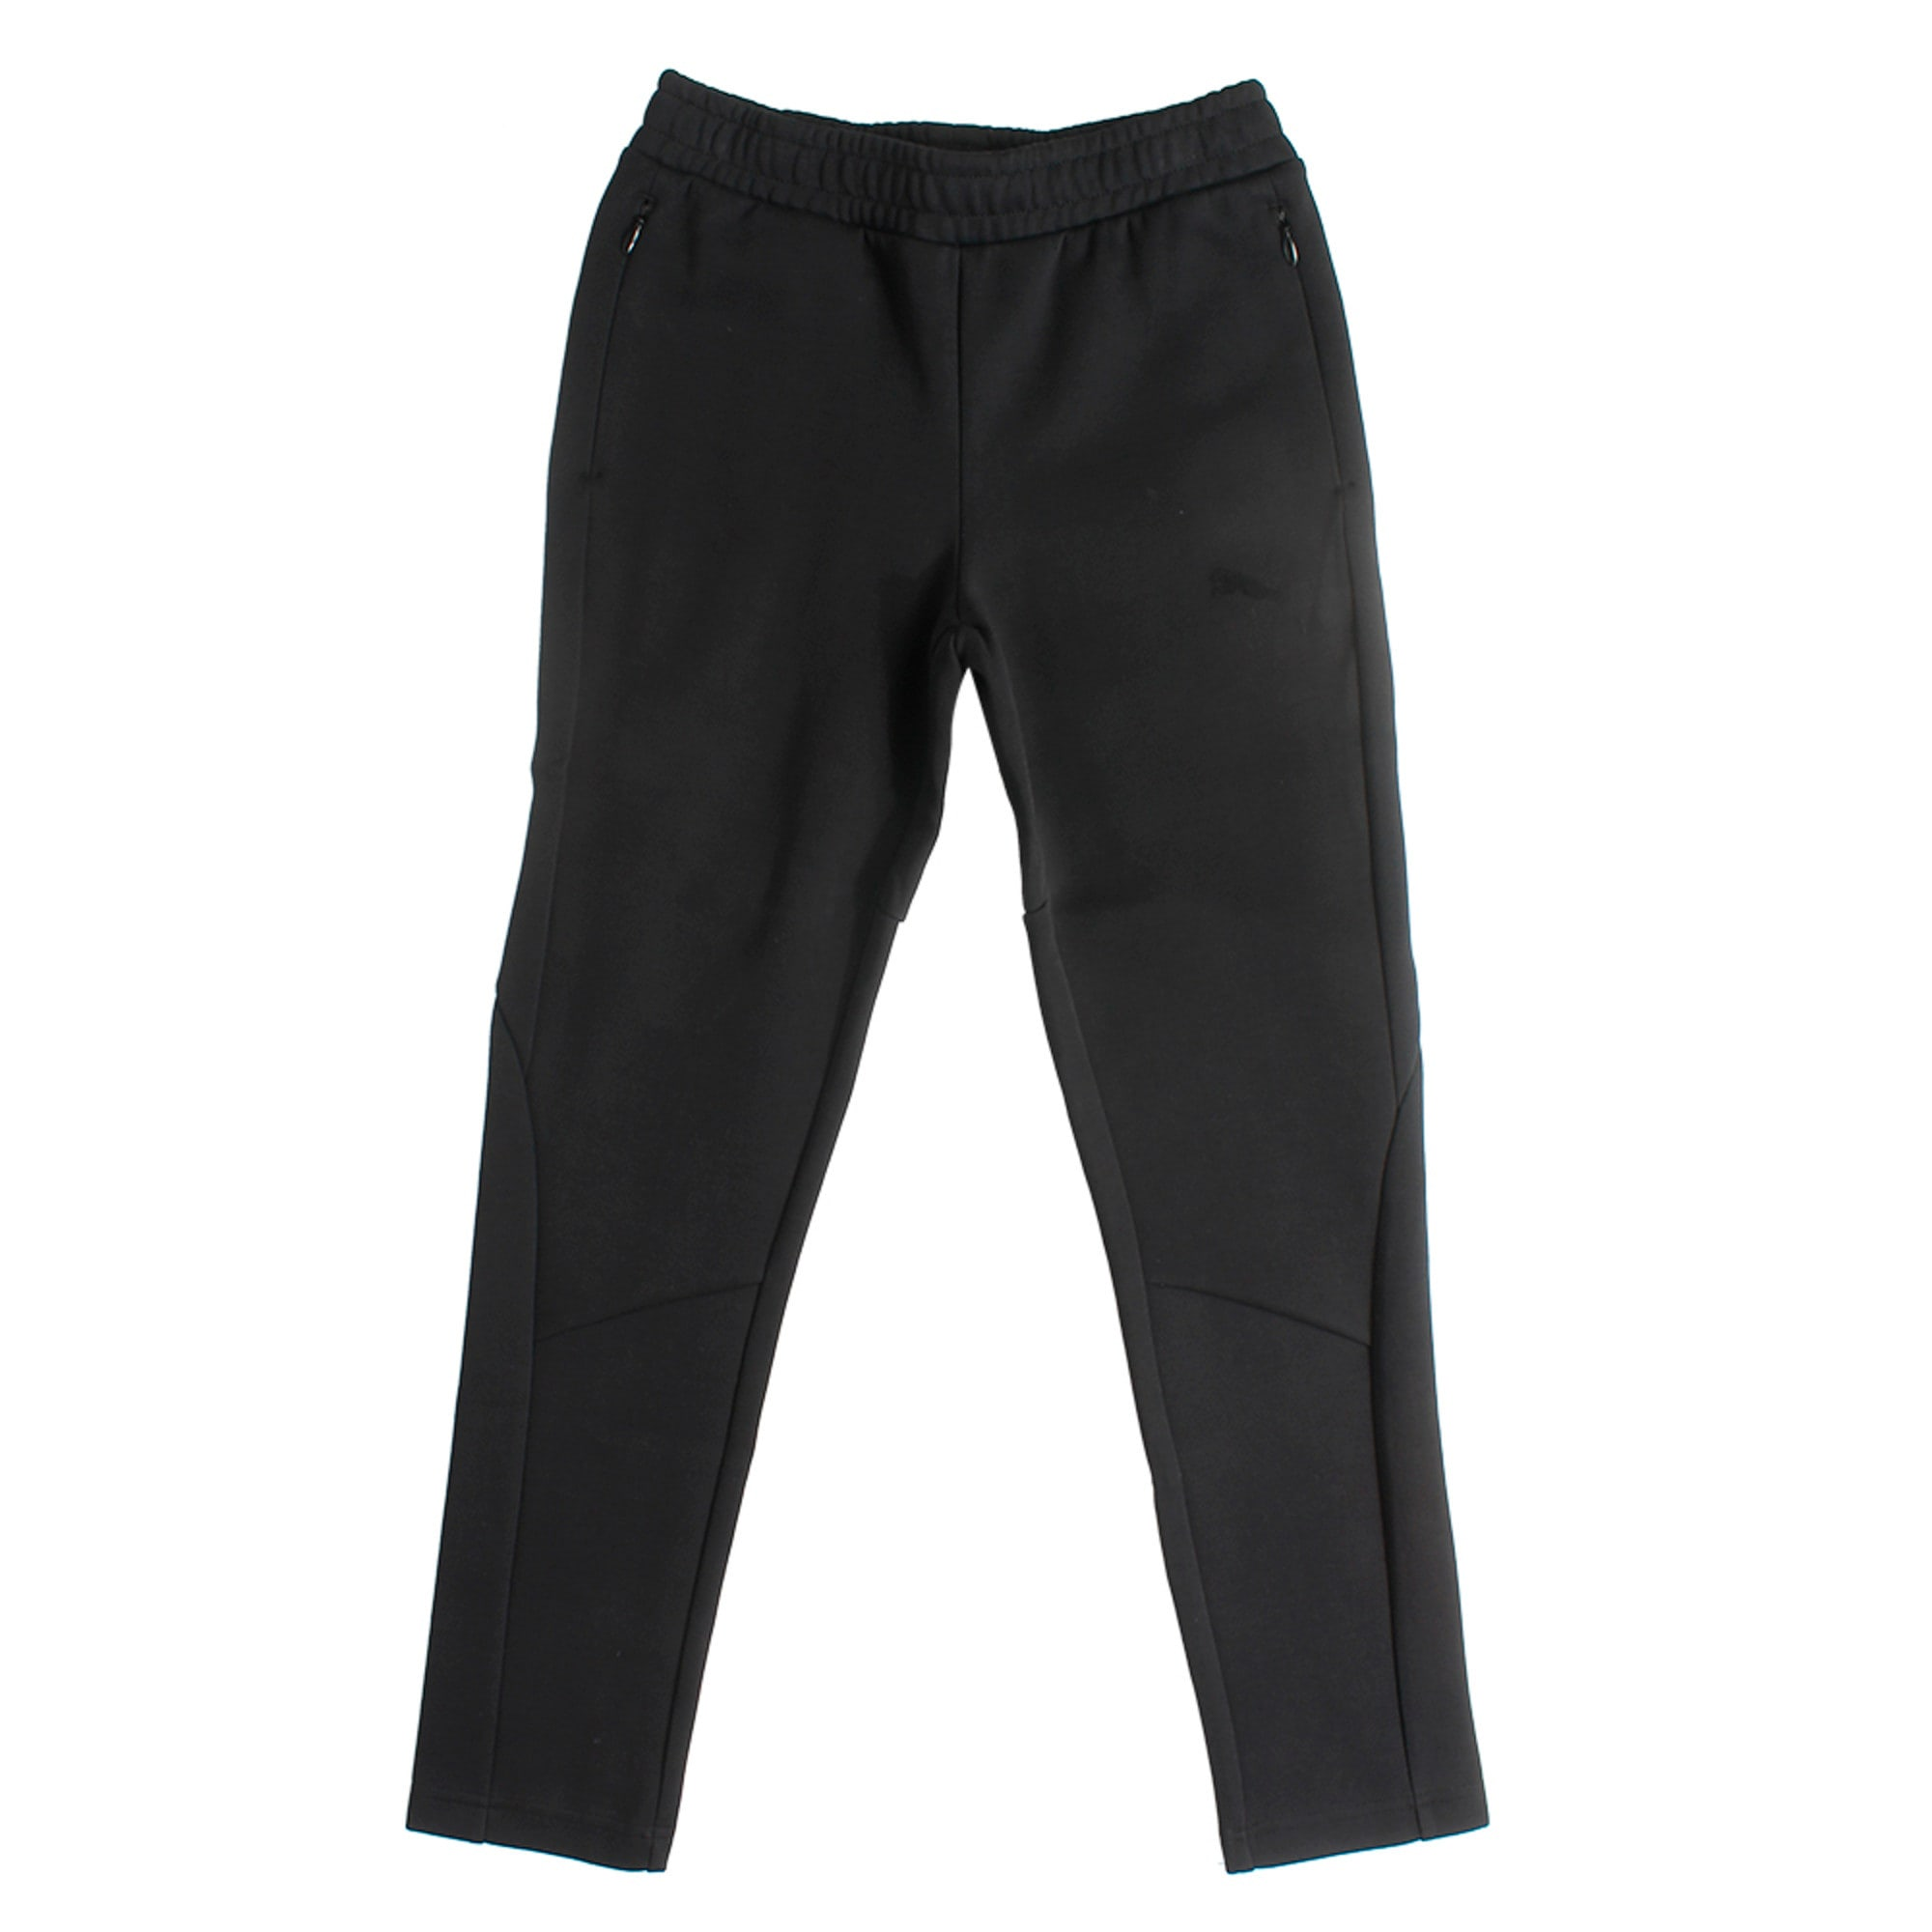 Thumbnail 3 of Evostripe Move Boys' Pants, Cotton Black, medium-IND